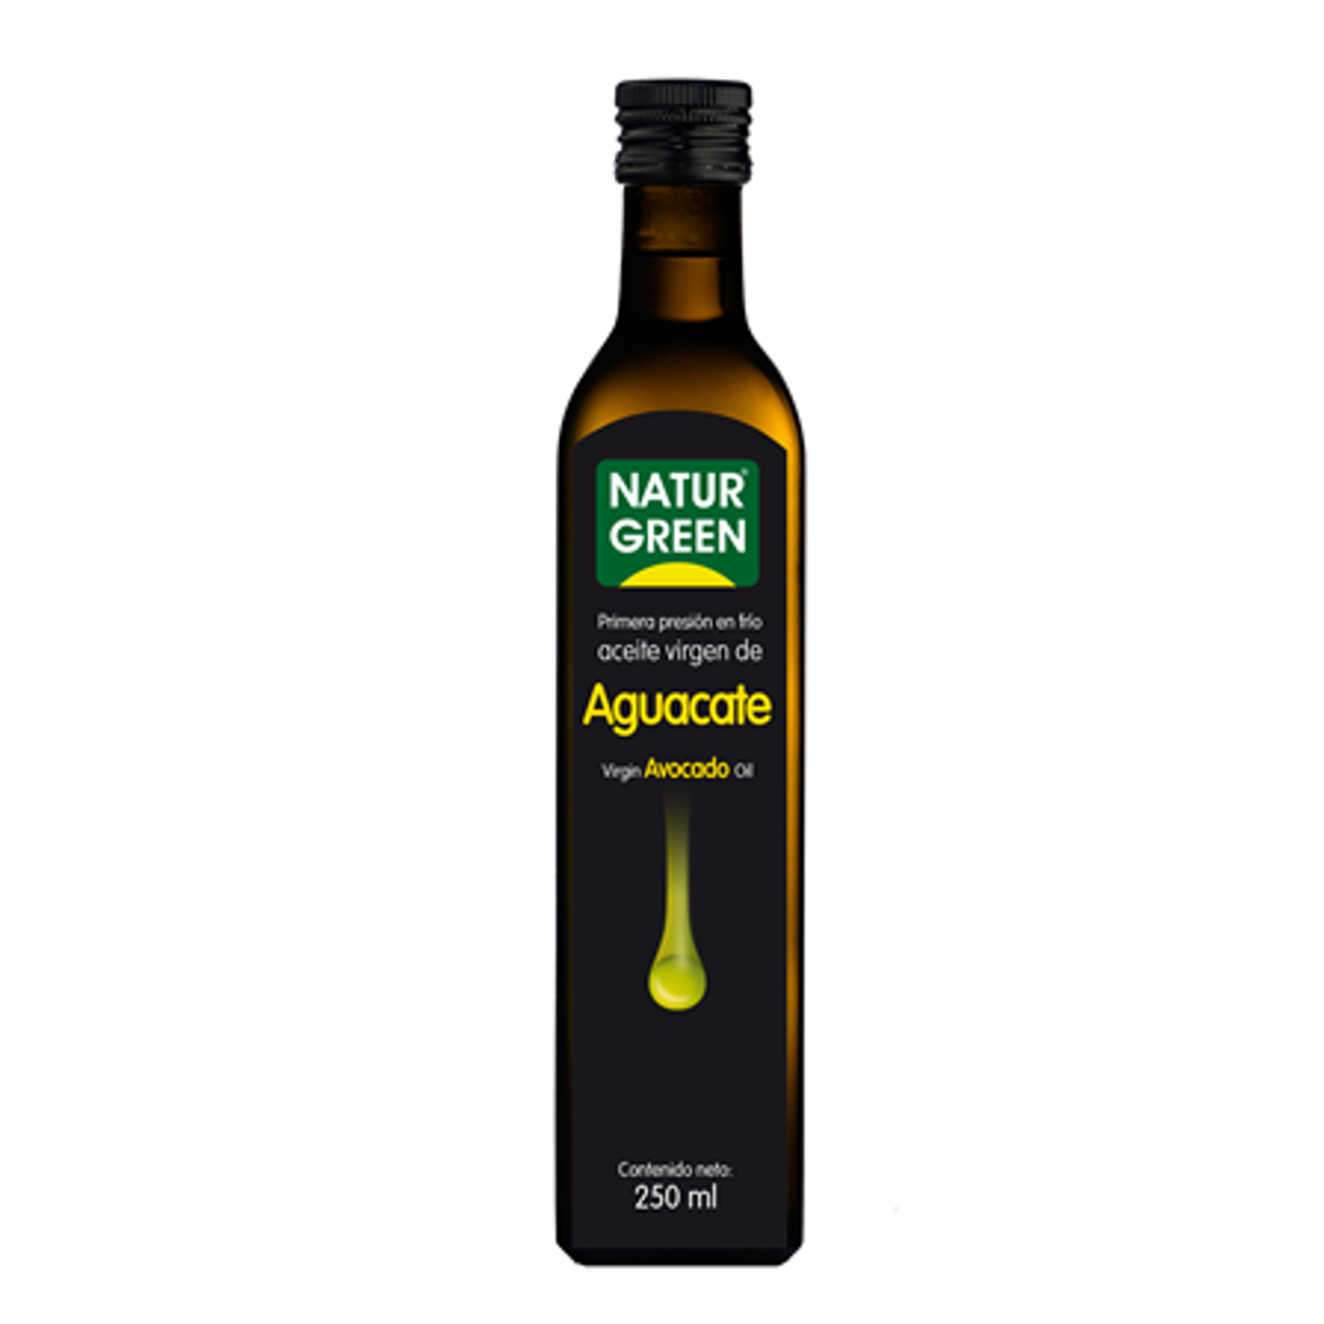 VIRGIN AVOCADO OIL - 250ml